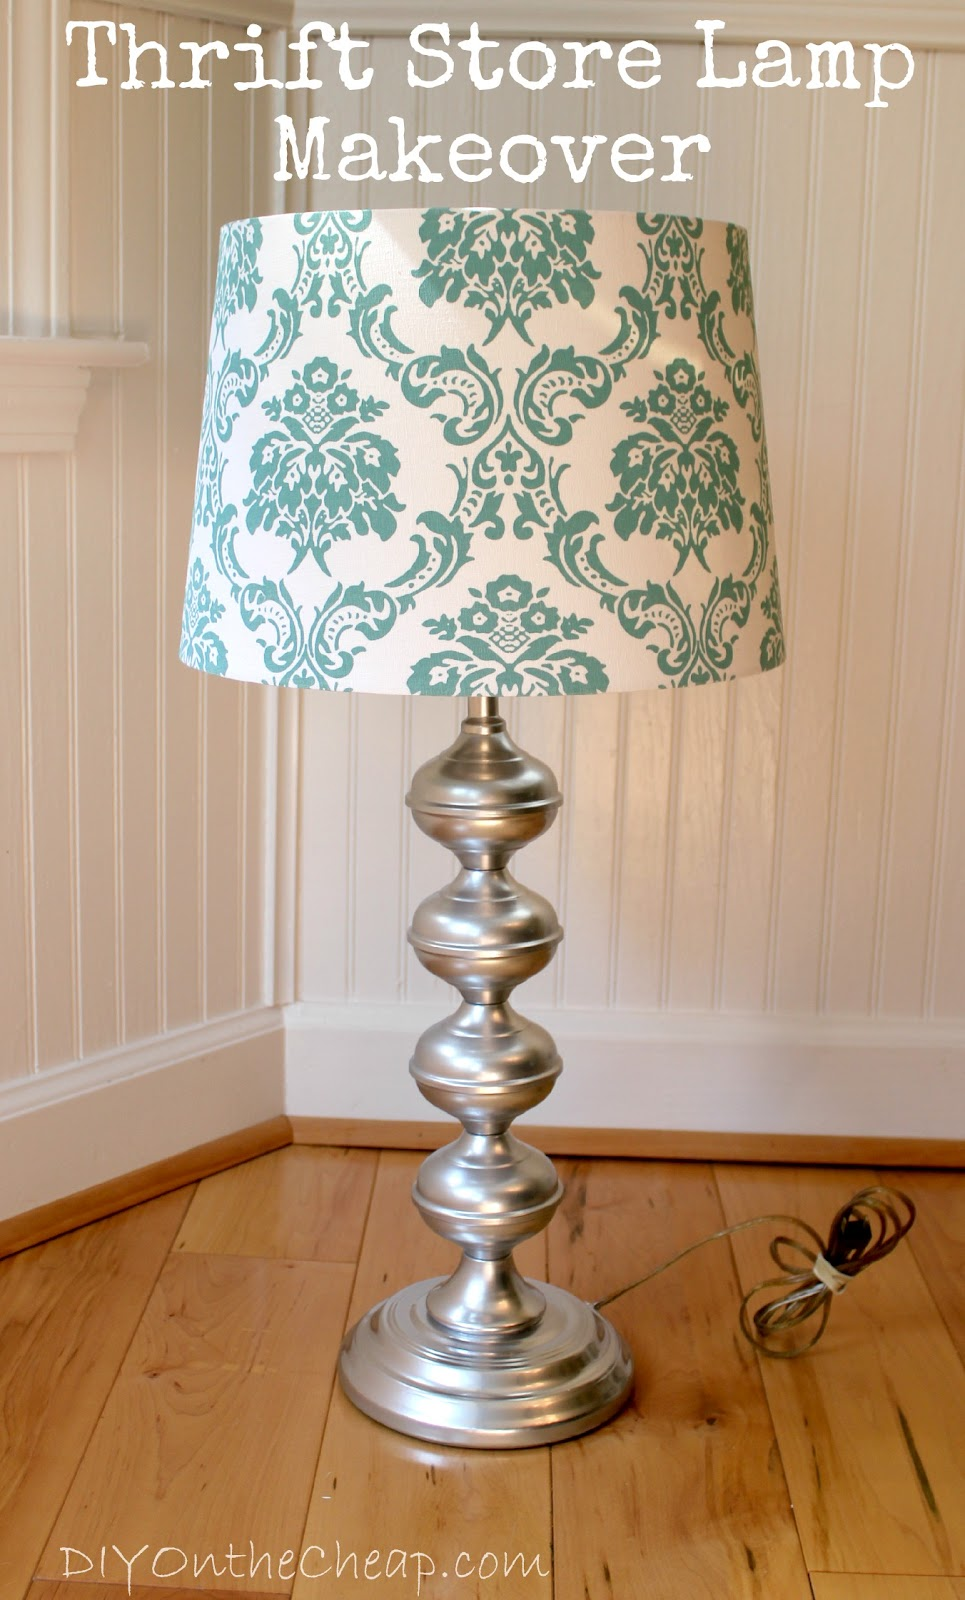 Thrift store lamp makeover diy on the cheap - Diy lamp shade ...